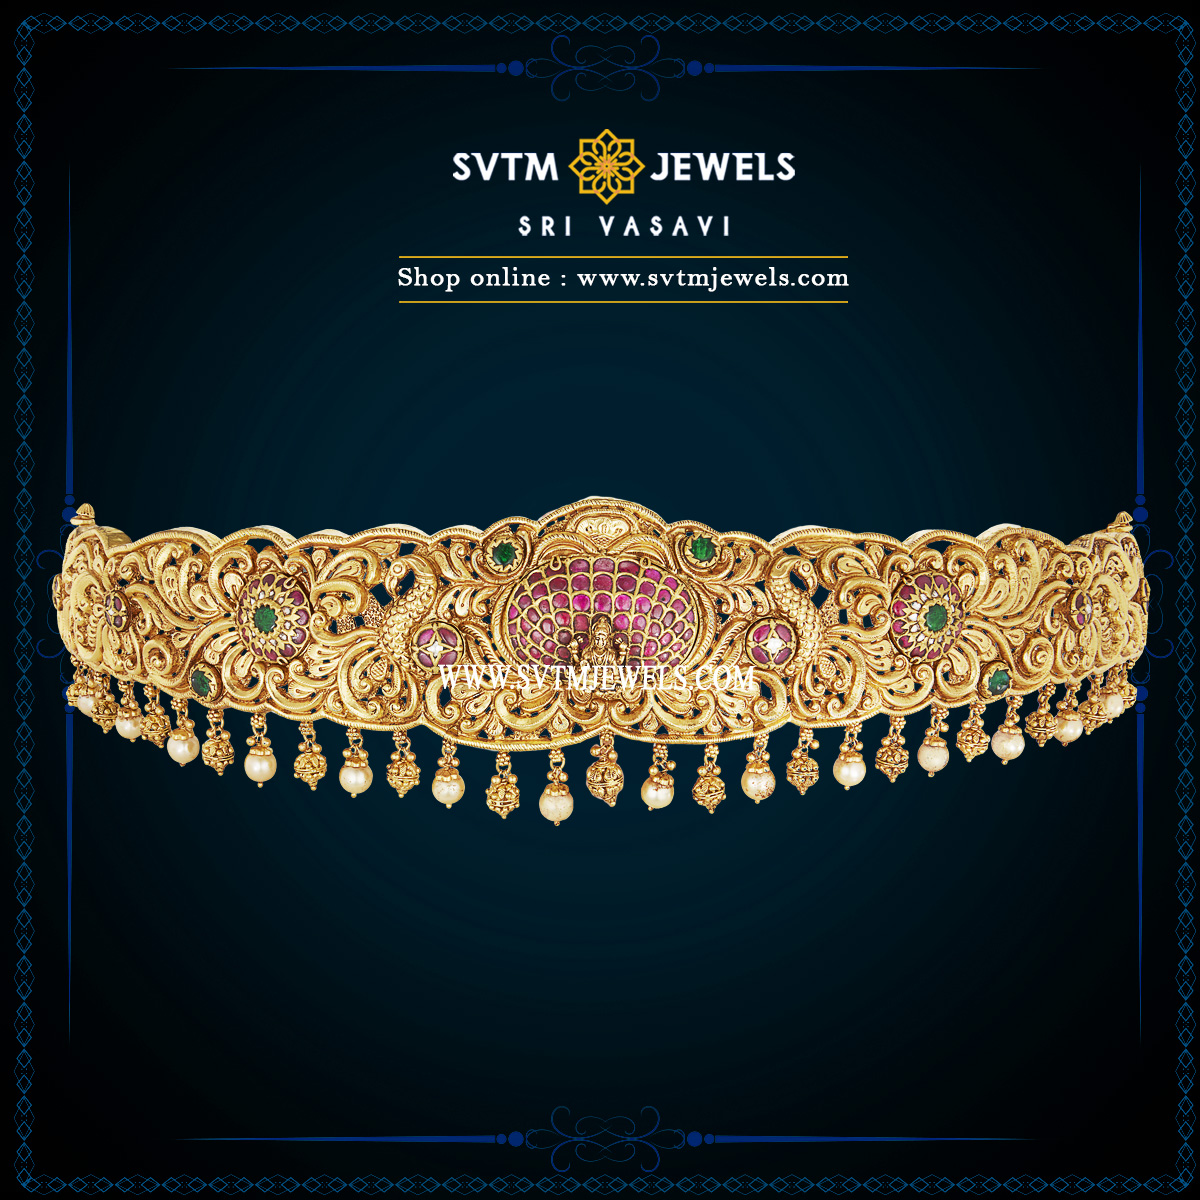 vaddanam-ottiyanam-hip-belt-designs (8)